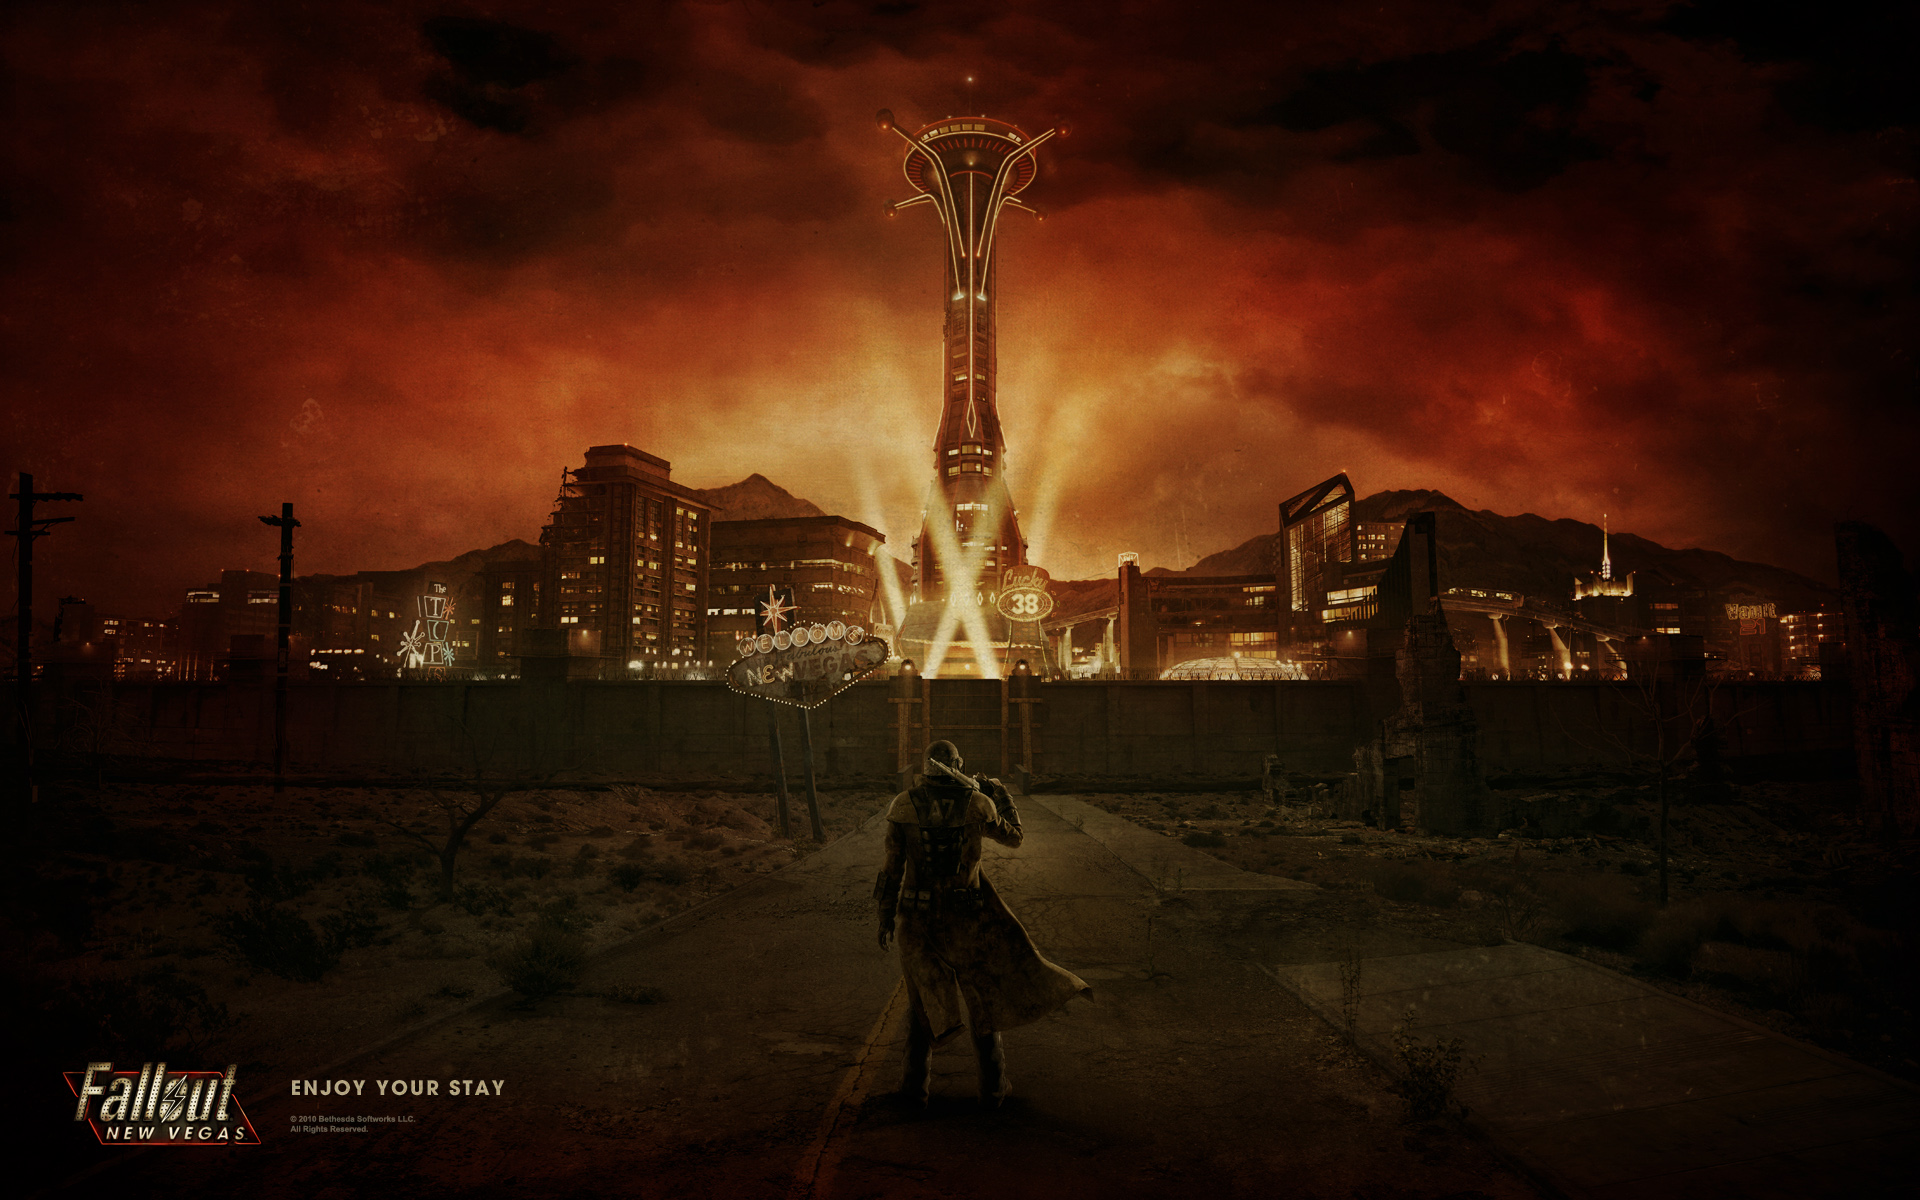 Fallout New Vegas Hd Wallpaper Wallpaper